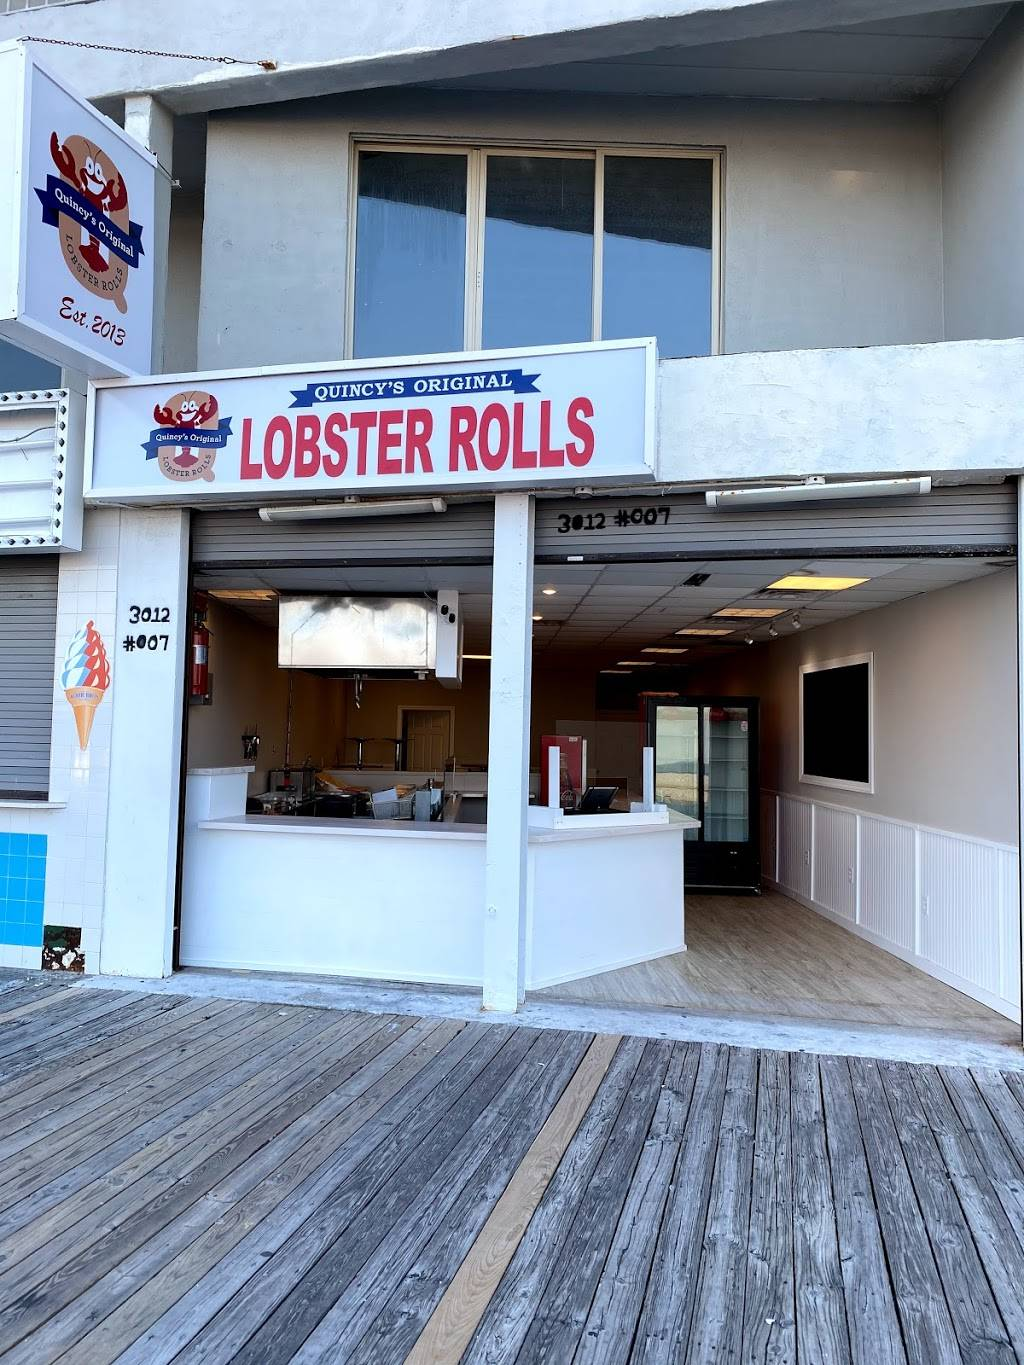 Quincys Original Lobster Rolls | restaurant | 3012 Boardwalk, Wildwood, NJ 08260, USA | 6093055970 OR +1 609-305-5970